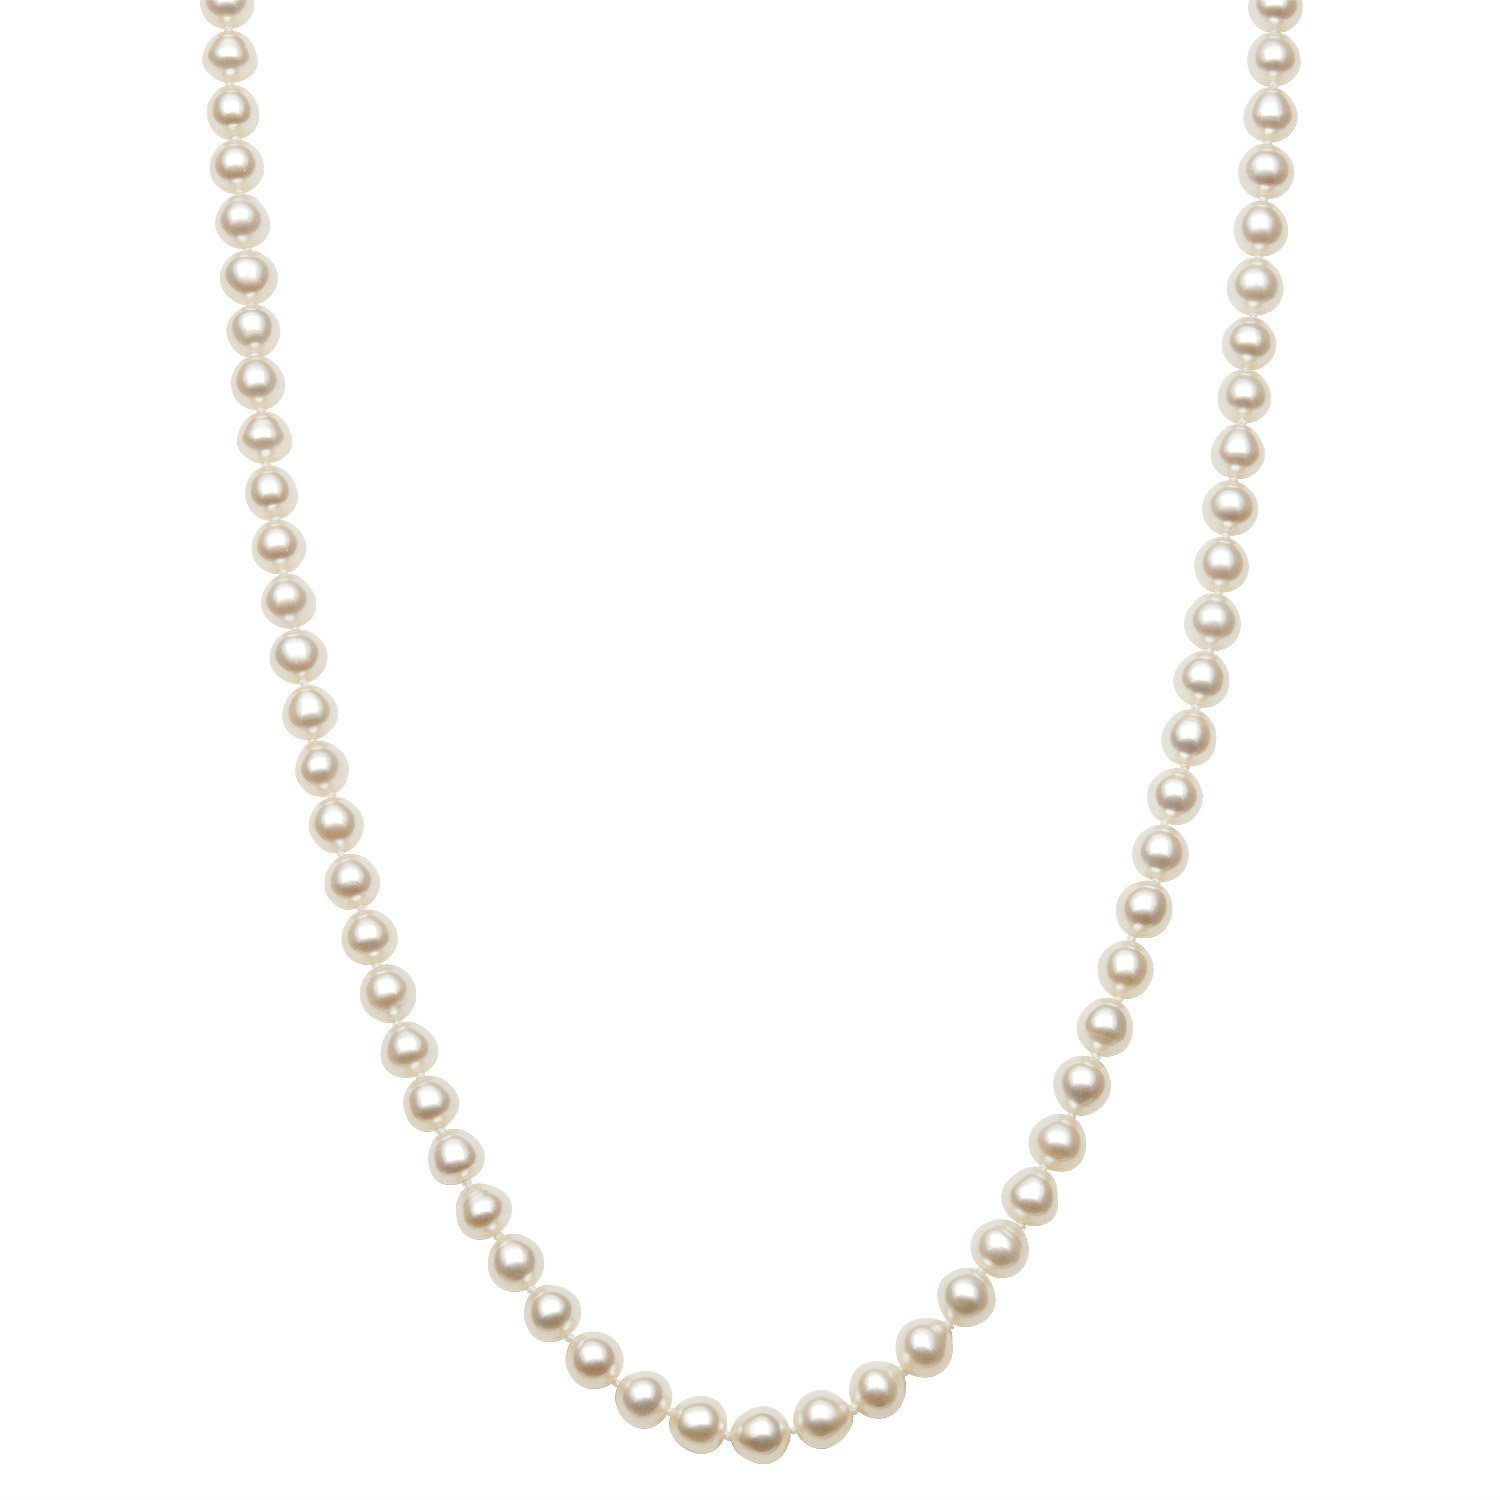 Endless Style 6.0-6.5mm White Cultured Freshwater Pearl Strand Necklace, 100'' No Metal by Pearlzzz